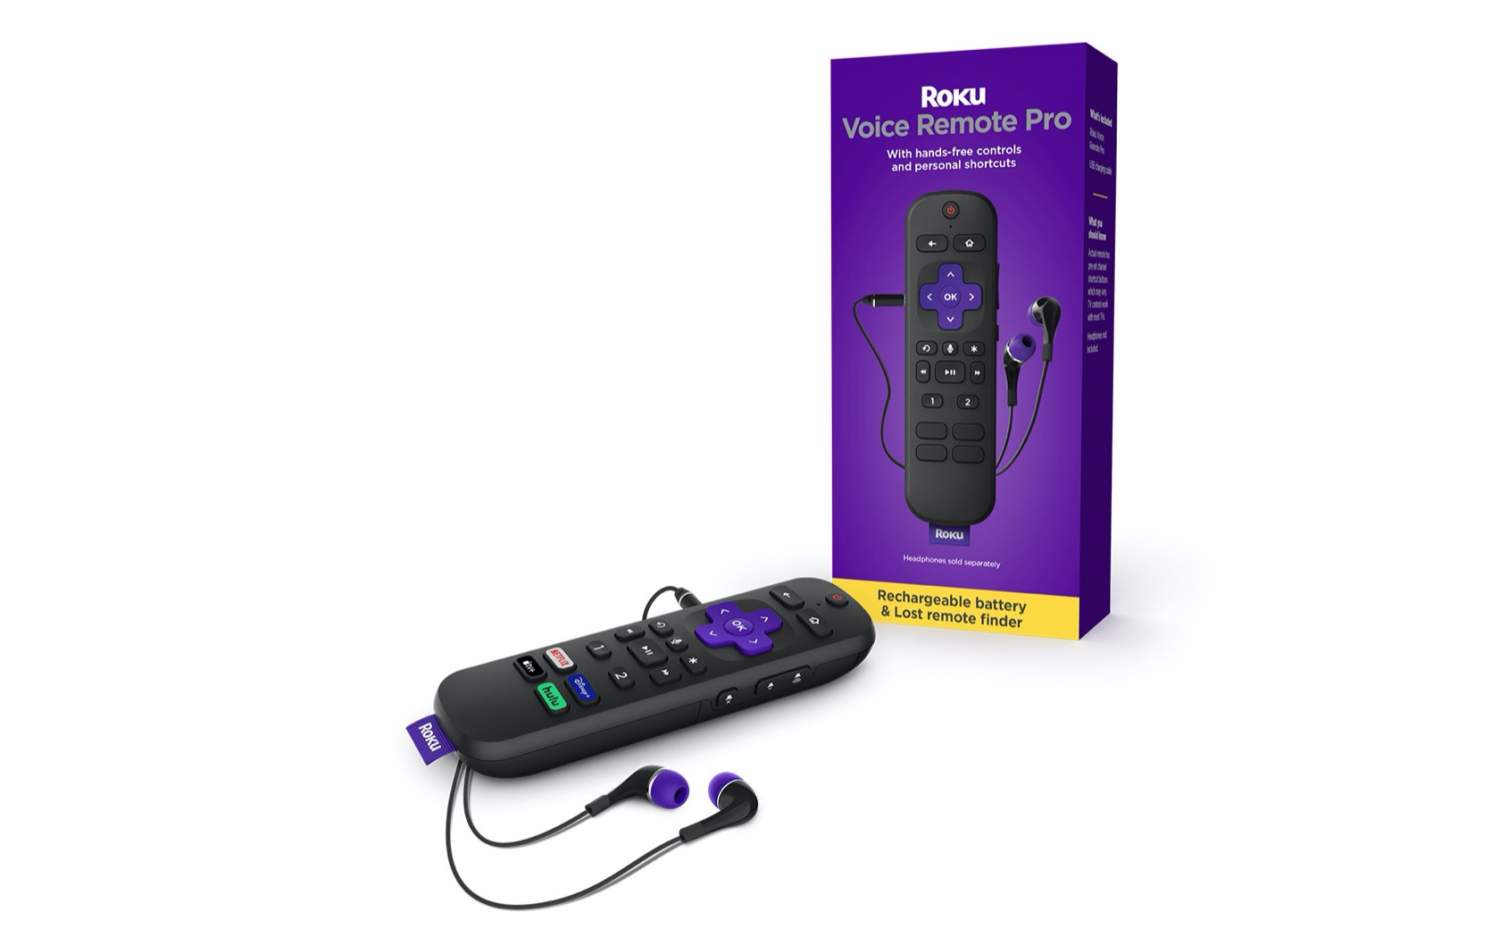 Roku-Voice-Remote-Pro-with-Packaging.jpg